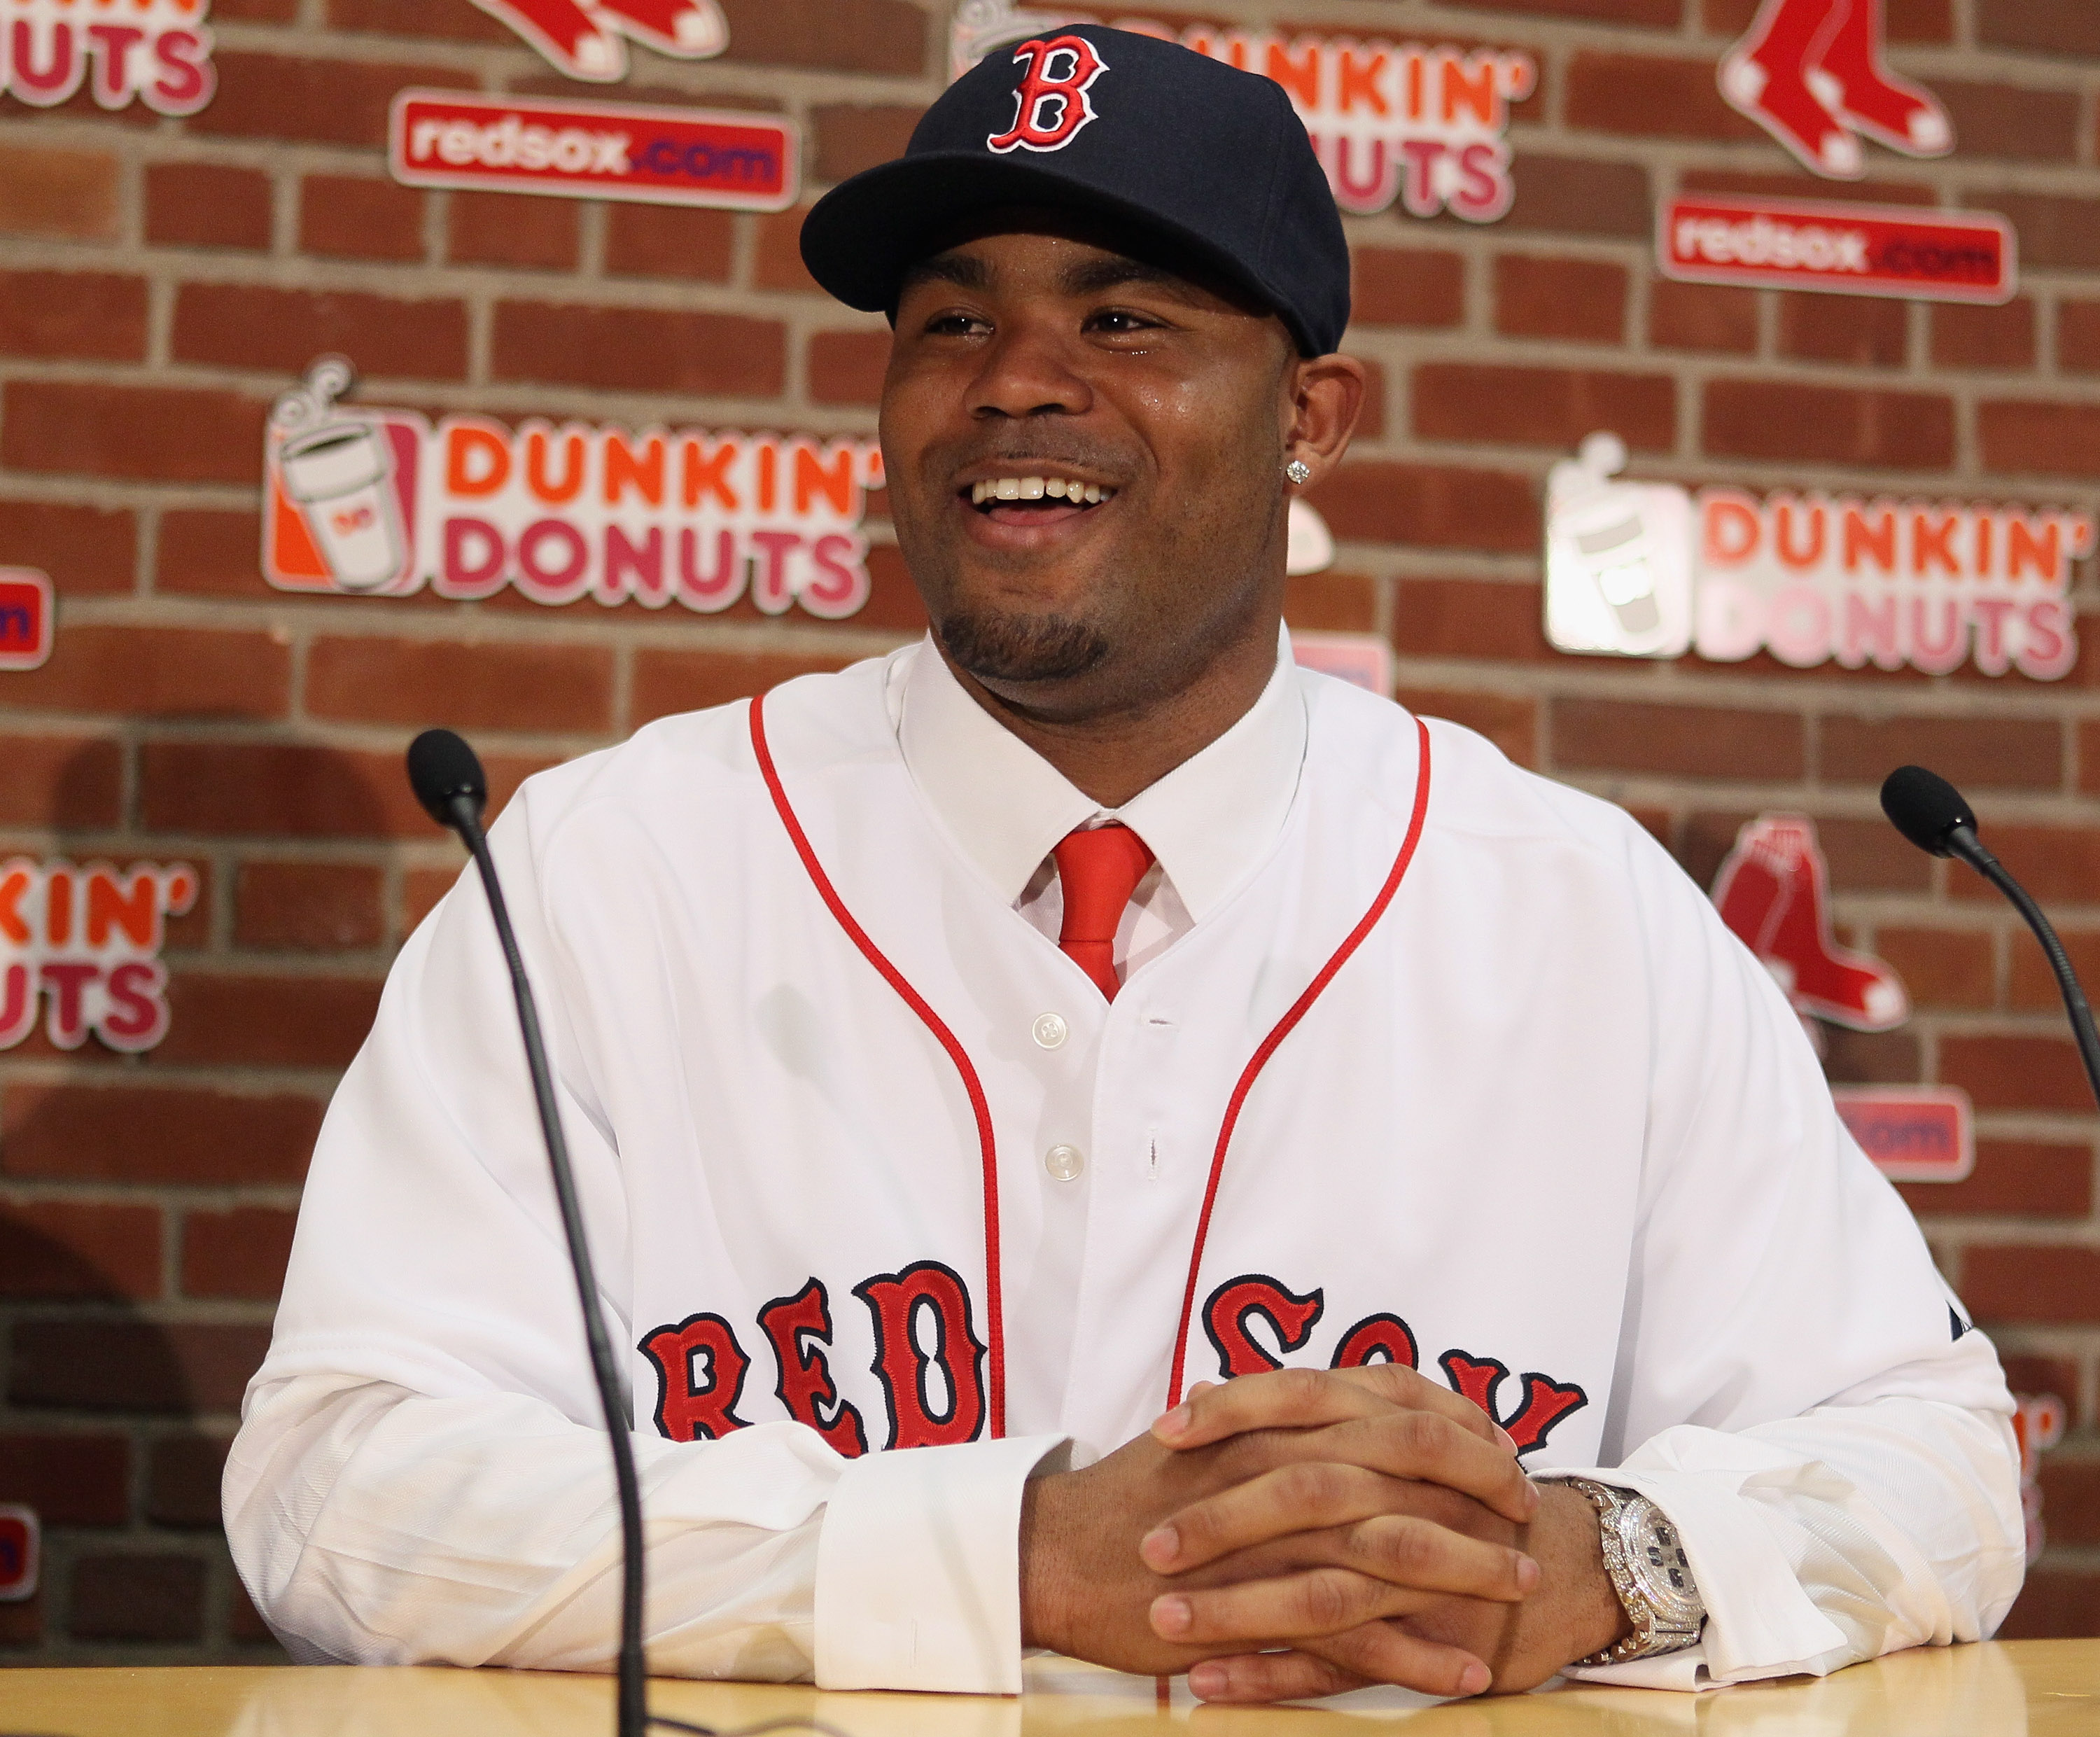 BOSTON, MA - DECEMBER 11:  Carl Crawford answers questions during a press conference announcing his signing with the Boston Red Sox on December 11,  2010 at the Fenway Park in Boston, Massachusetts.  (Photo by Elsa/Getty Images)